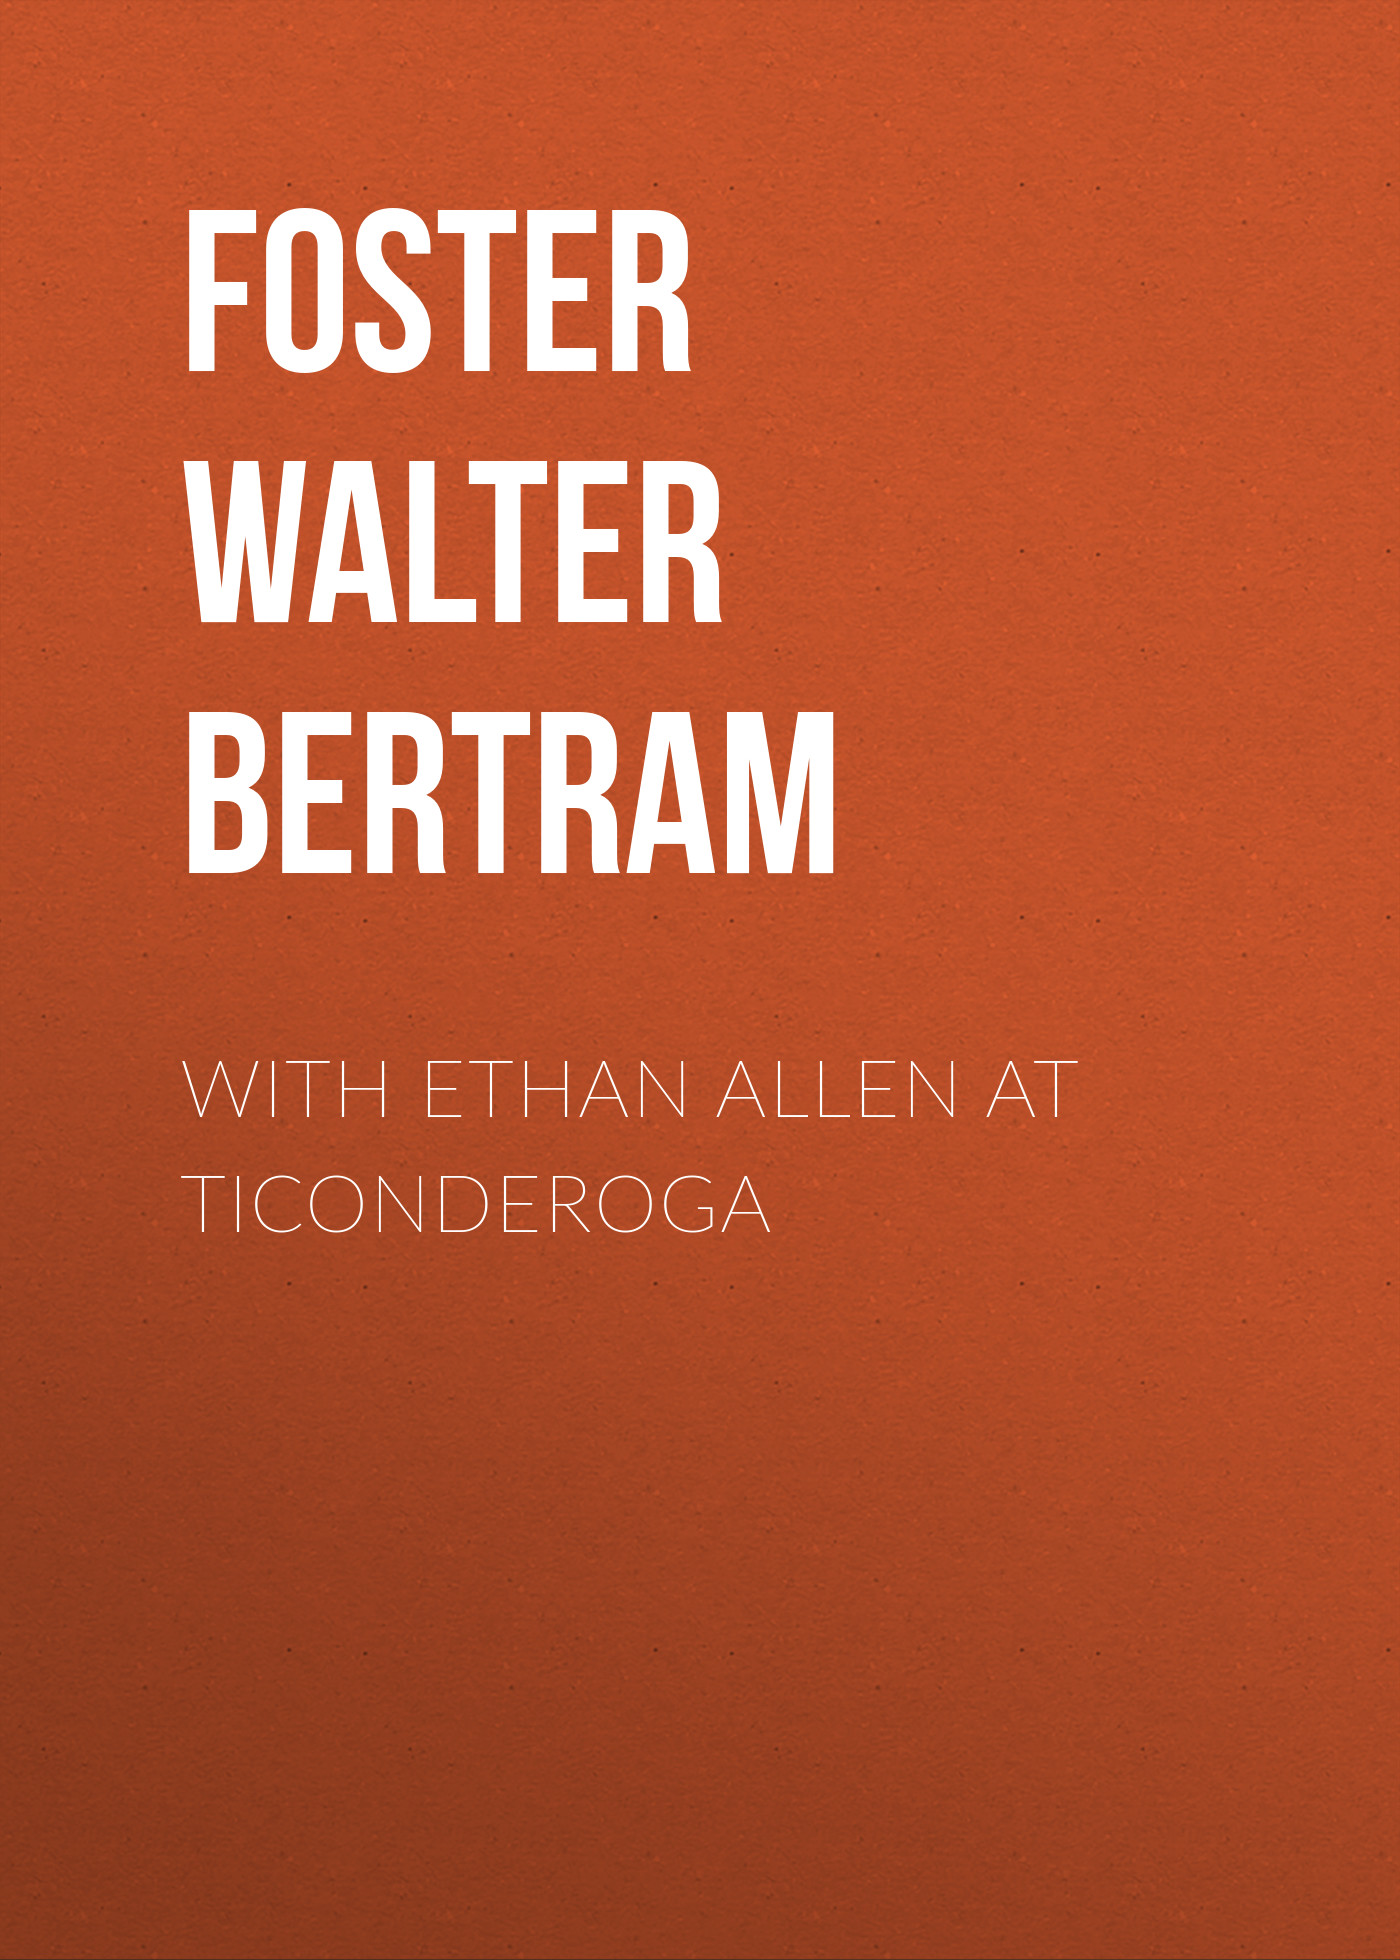 Foster Walter Bertram With Ethan Allen at Ticonderoga foster